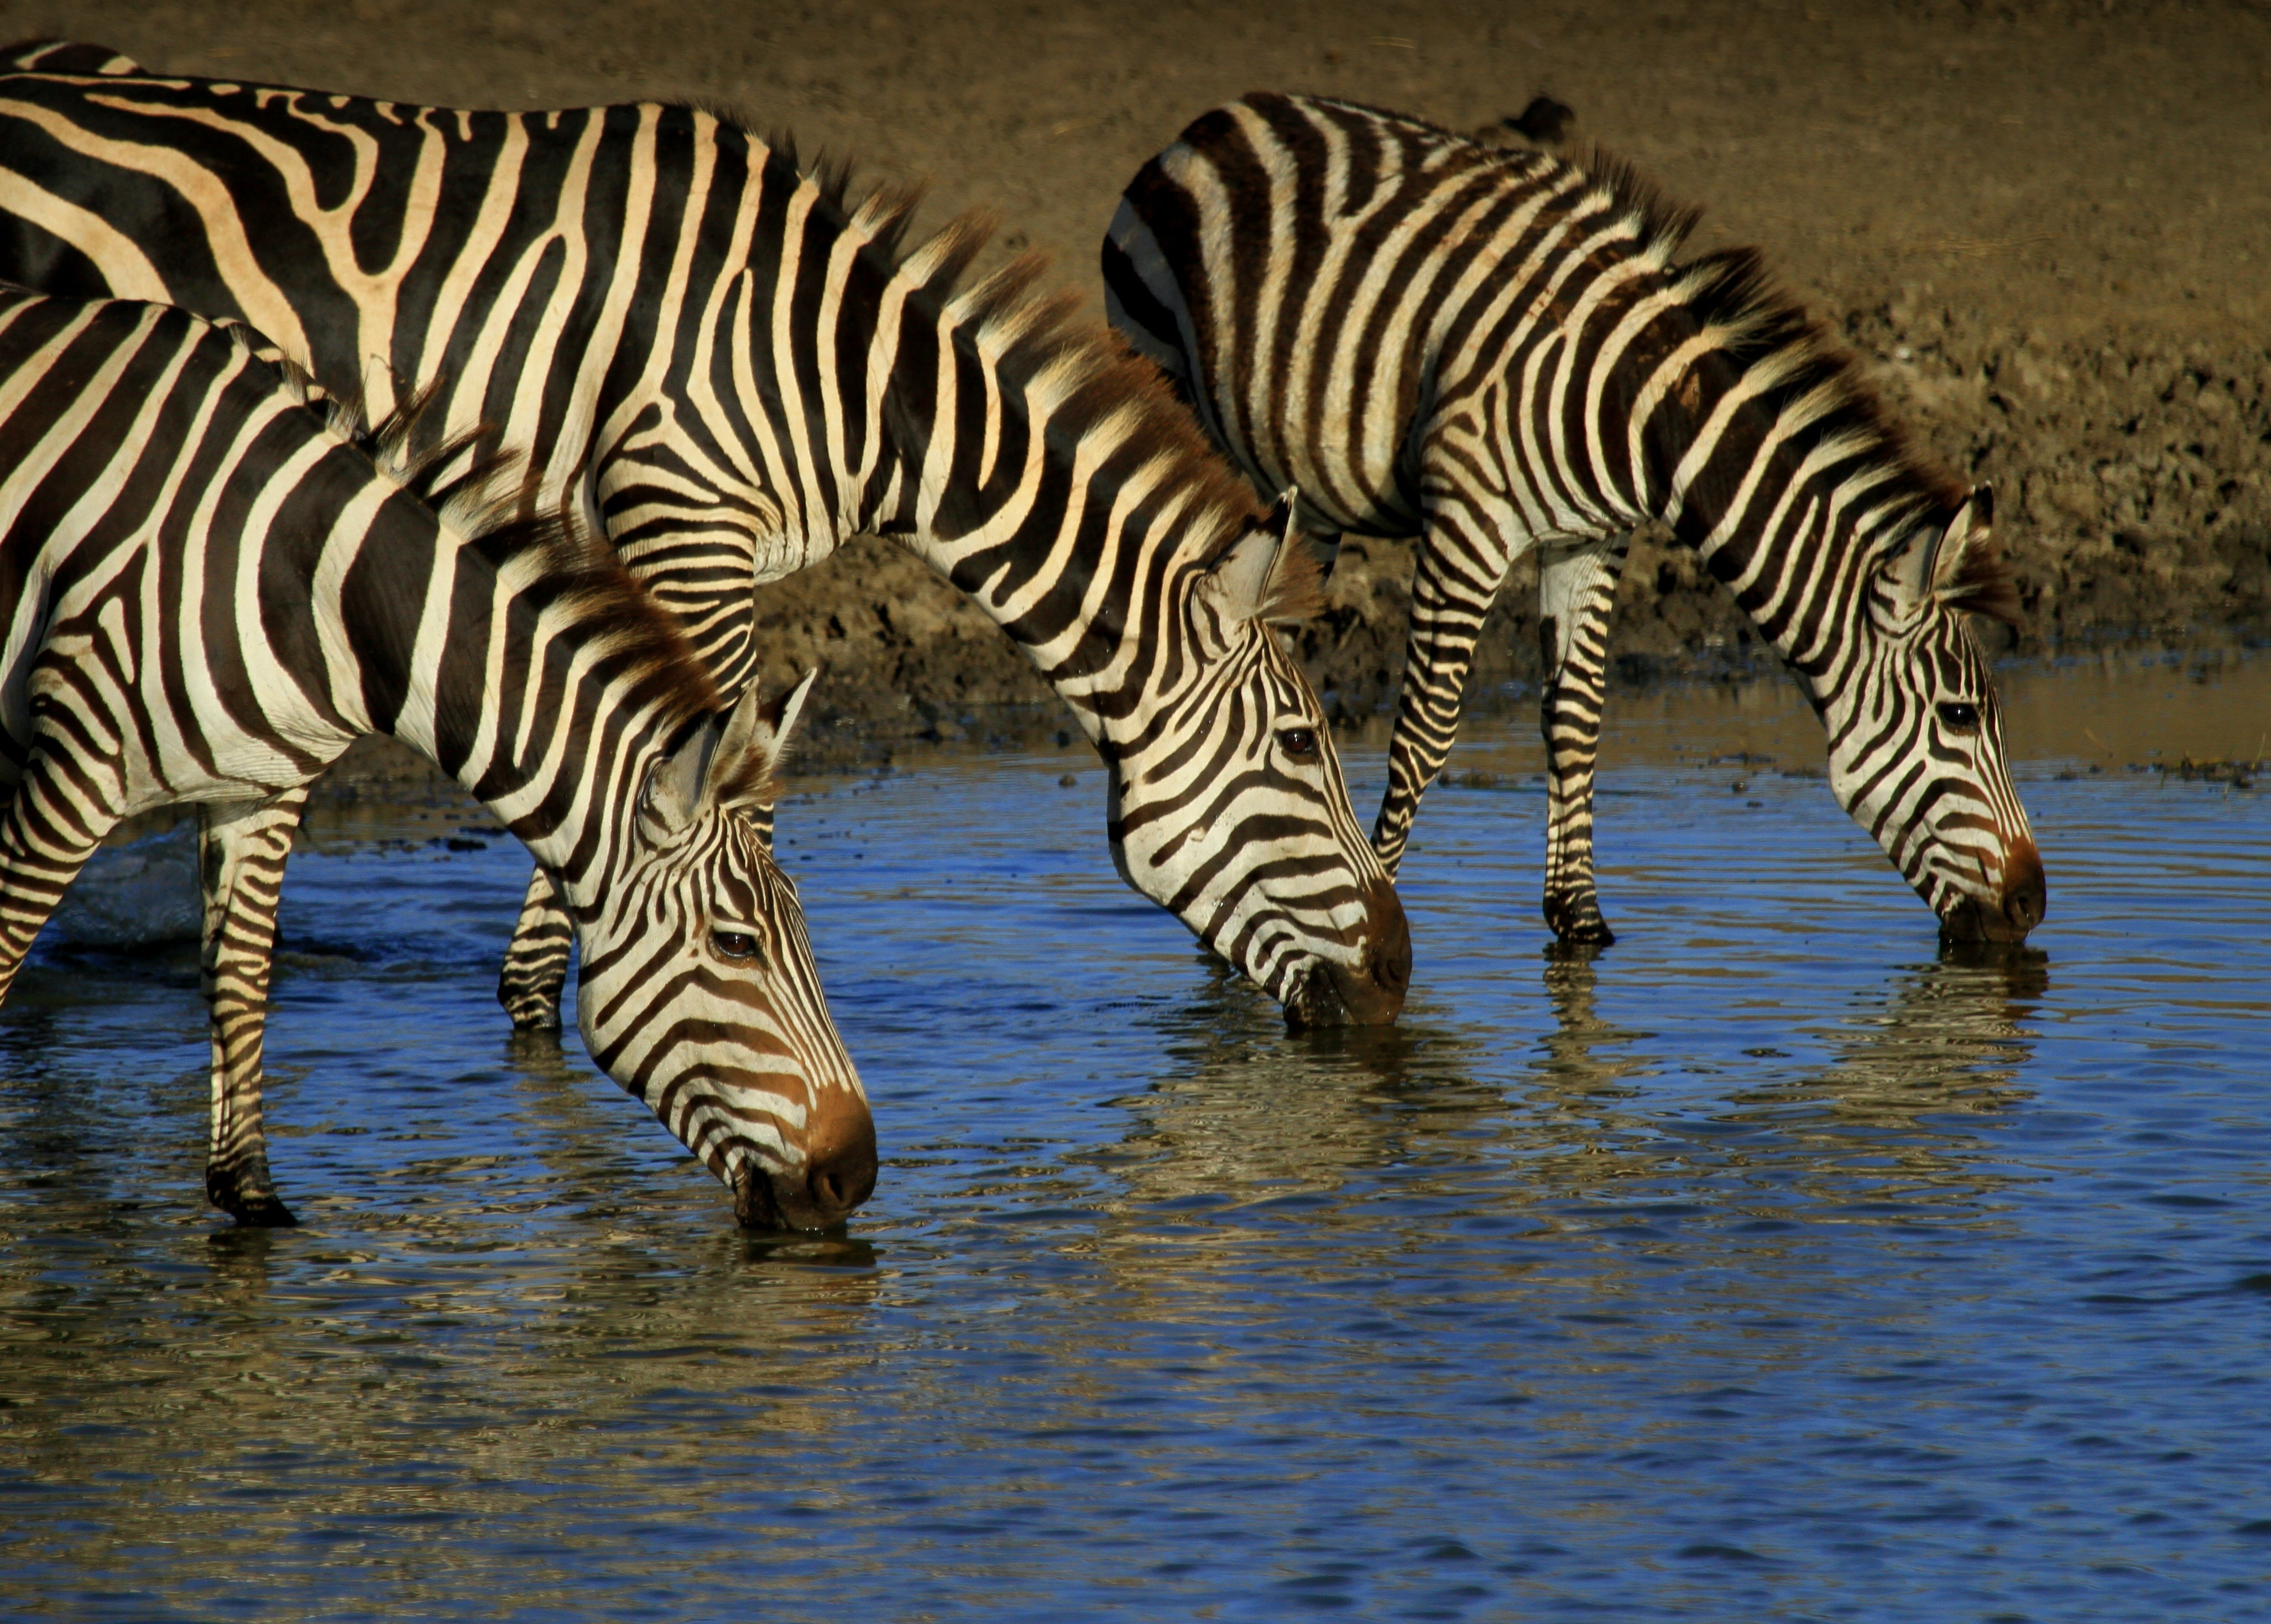 Three zebras drinking from a watering hole